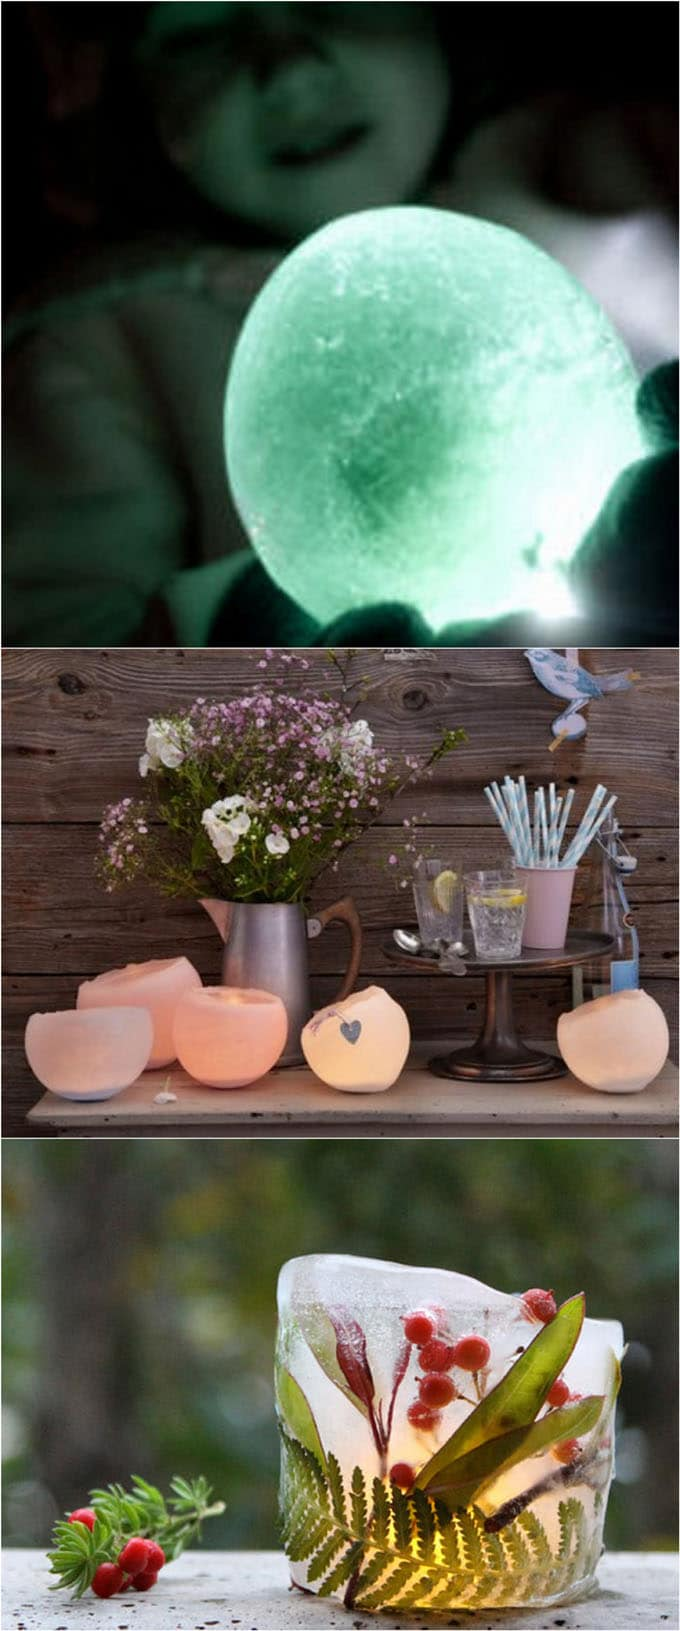 DIY-outdoor-lights-apieceofrainbowblog (14)